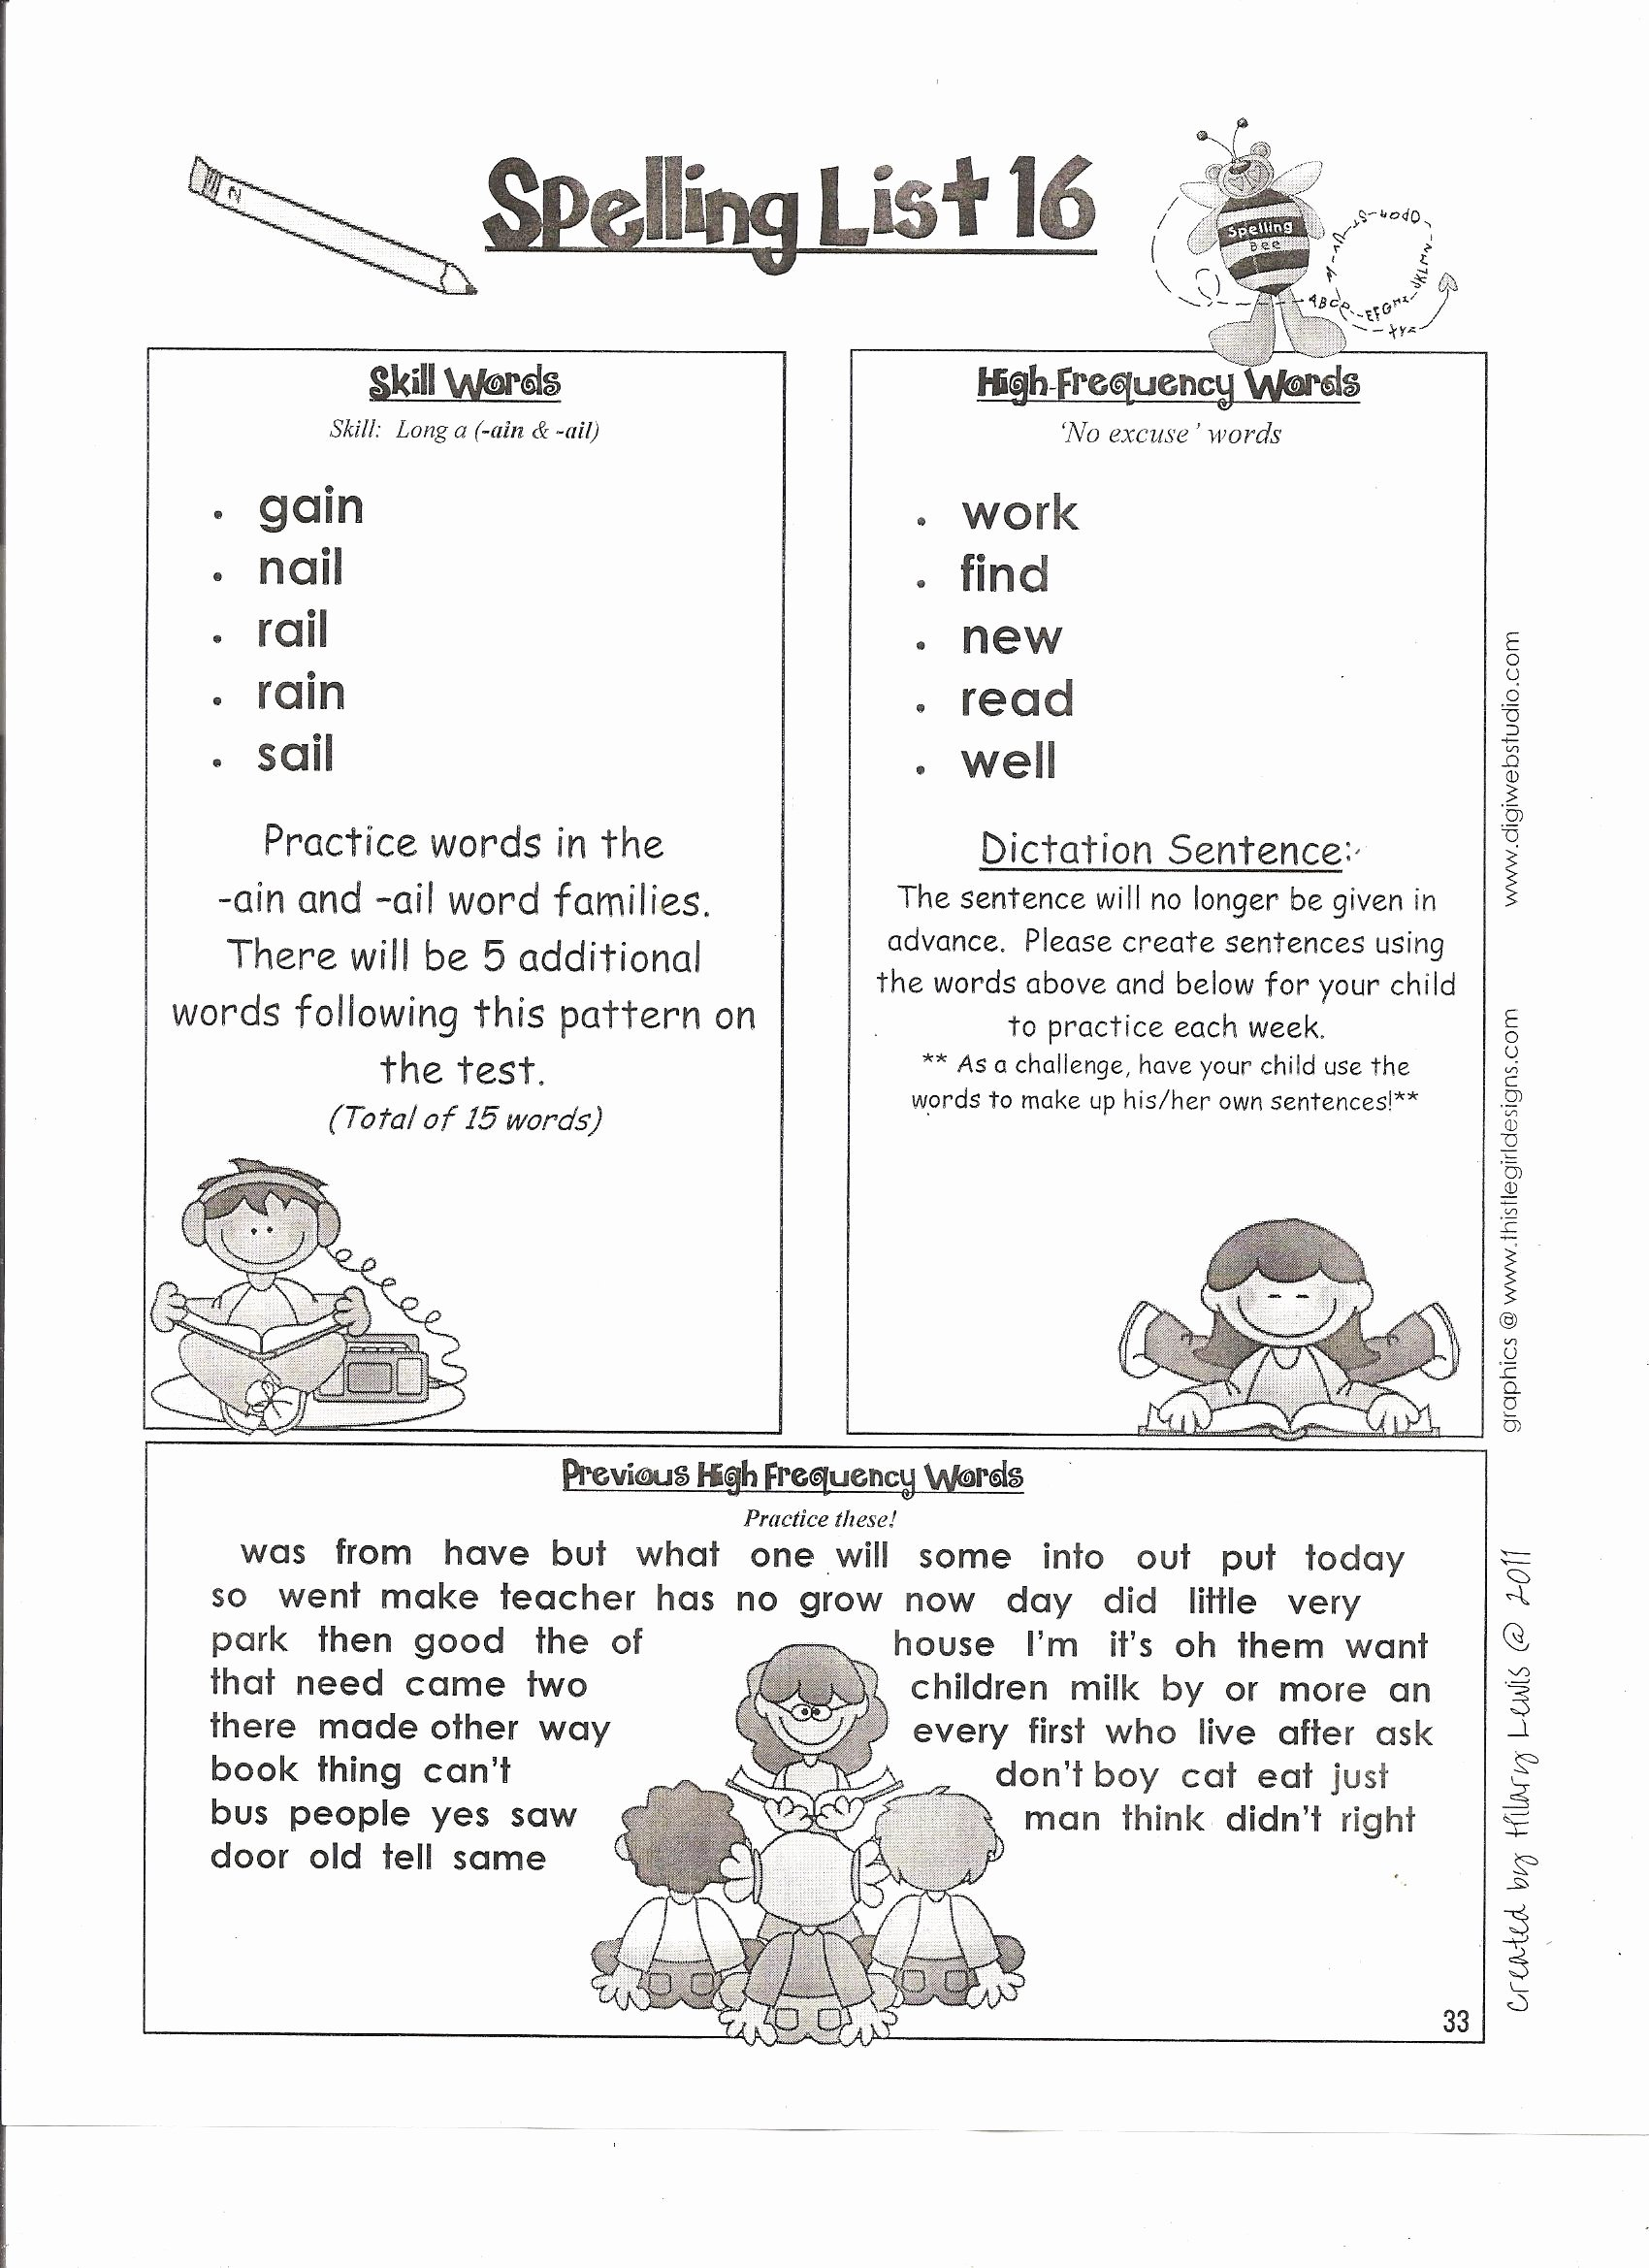 Spelling Test Template 15 Words Elegant Lear Jennifer Spelling Lists